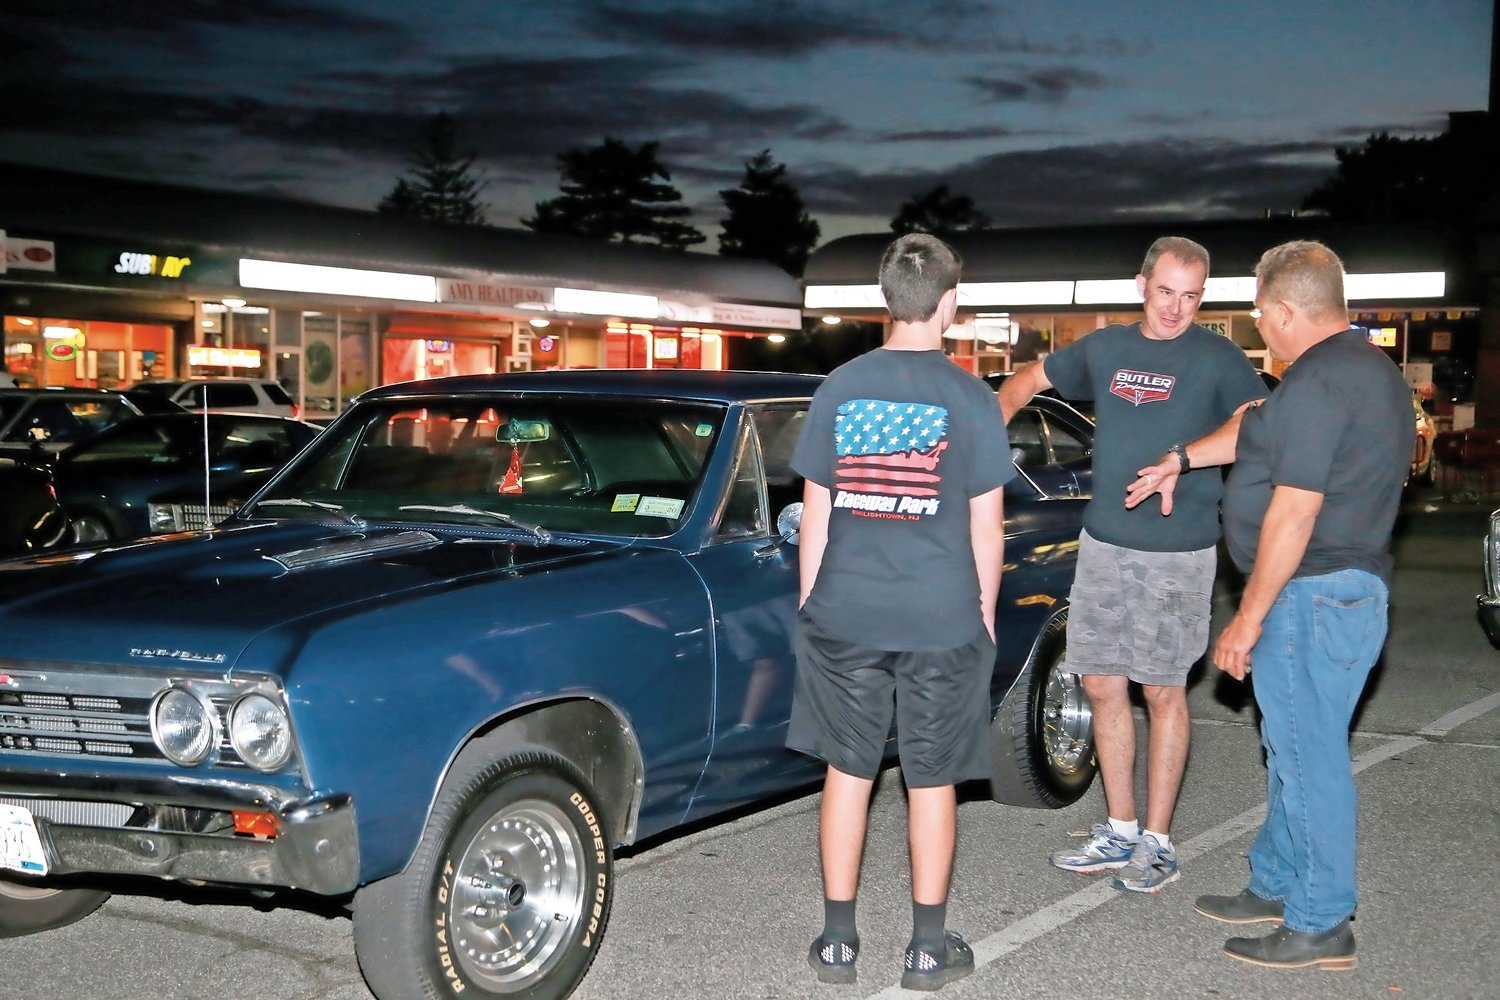 1967 Chevrolet Chevelle owner Sal Crino, right, chatted with Frank and Stephen Pulsifer about his car.